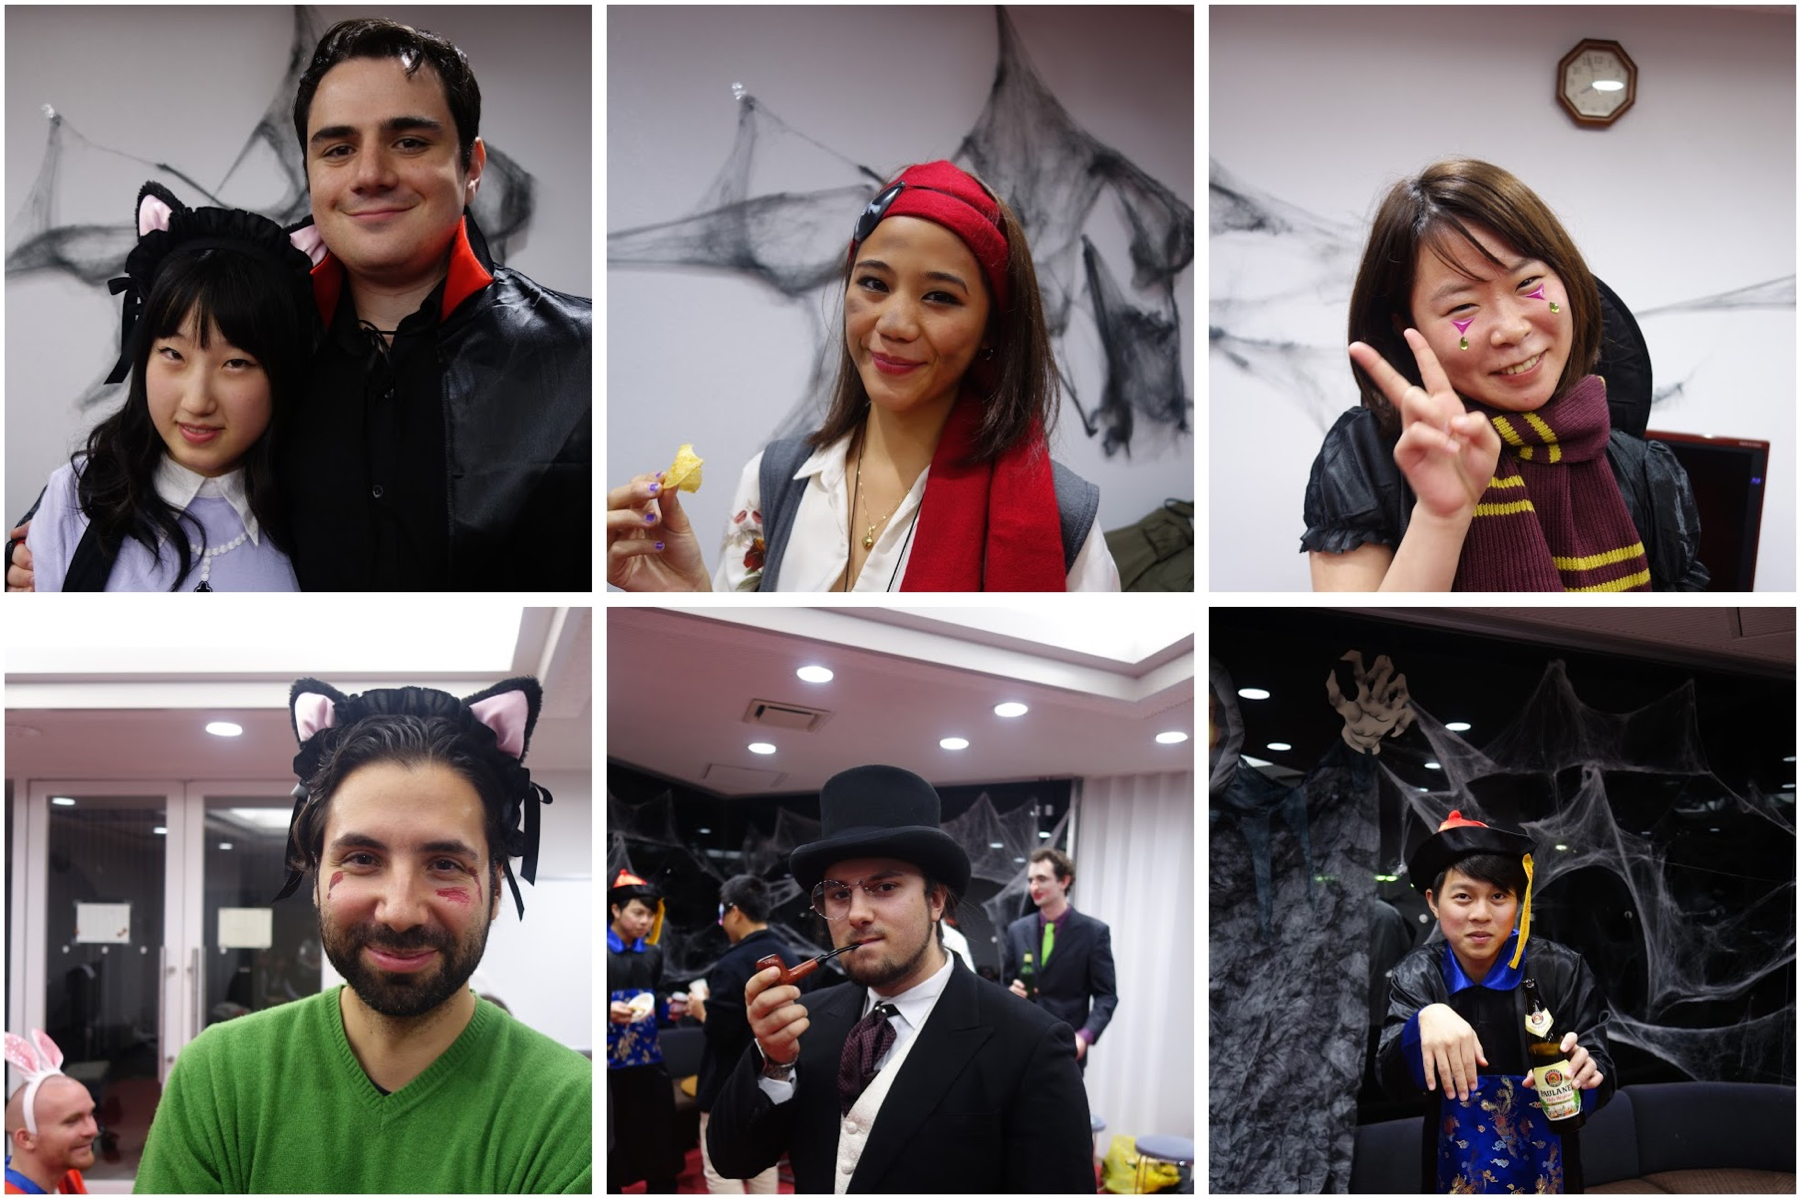 7 costumes, 9 nationalities (counting the background).